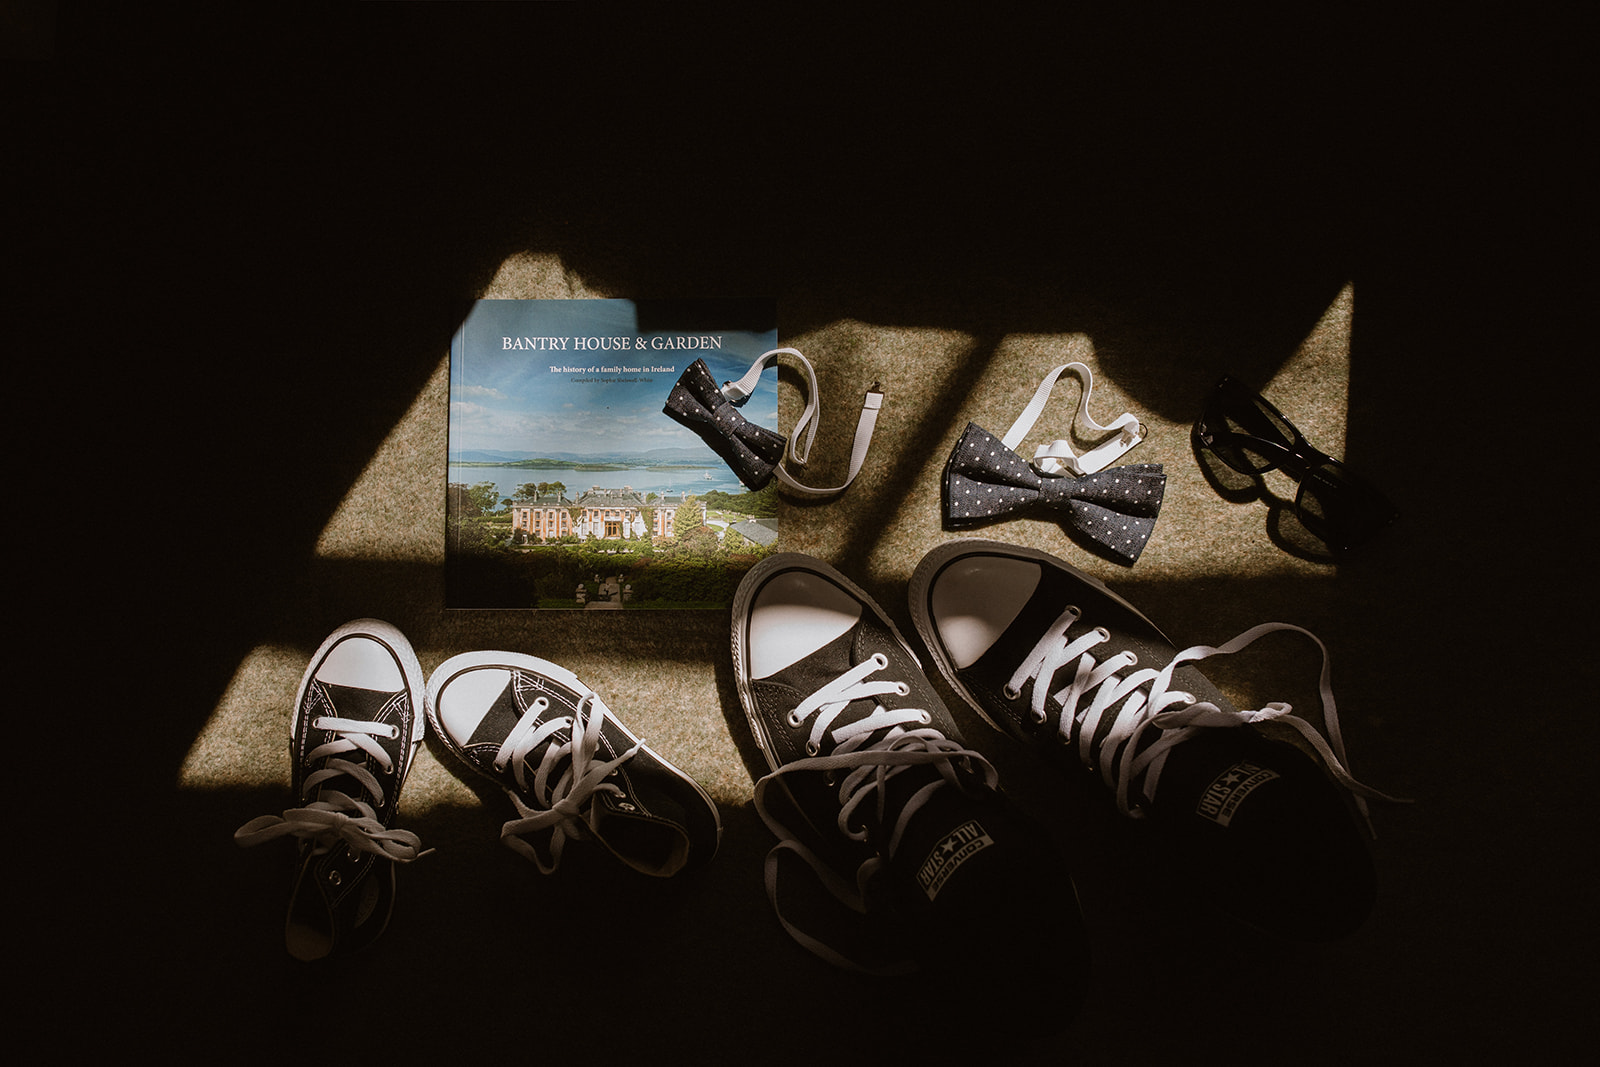 Celtic Ruins and Bantry House Elopement Converse tennis shoes